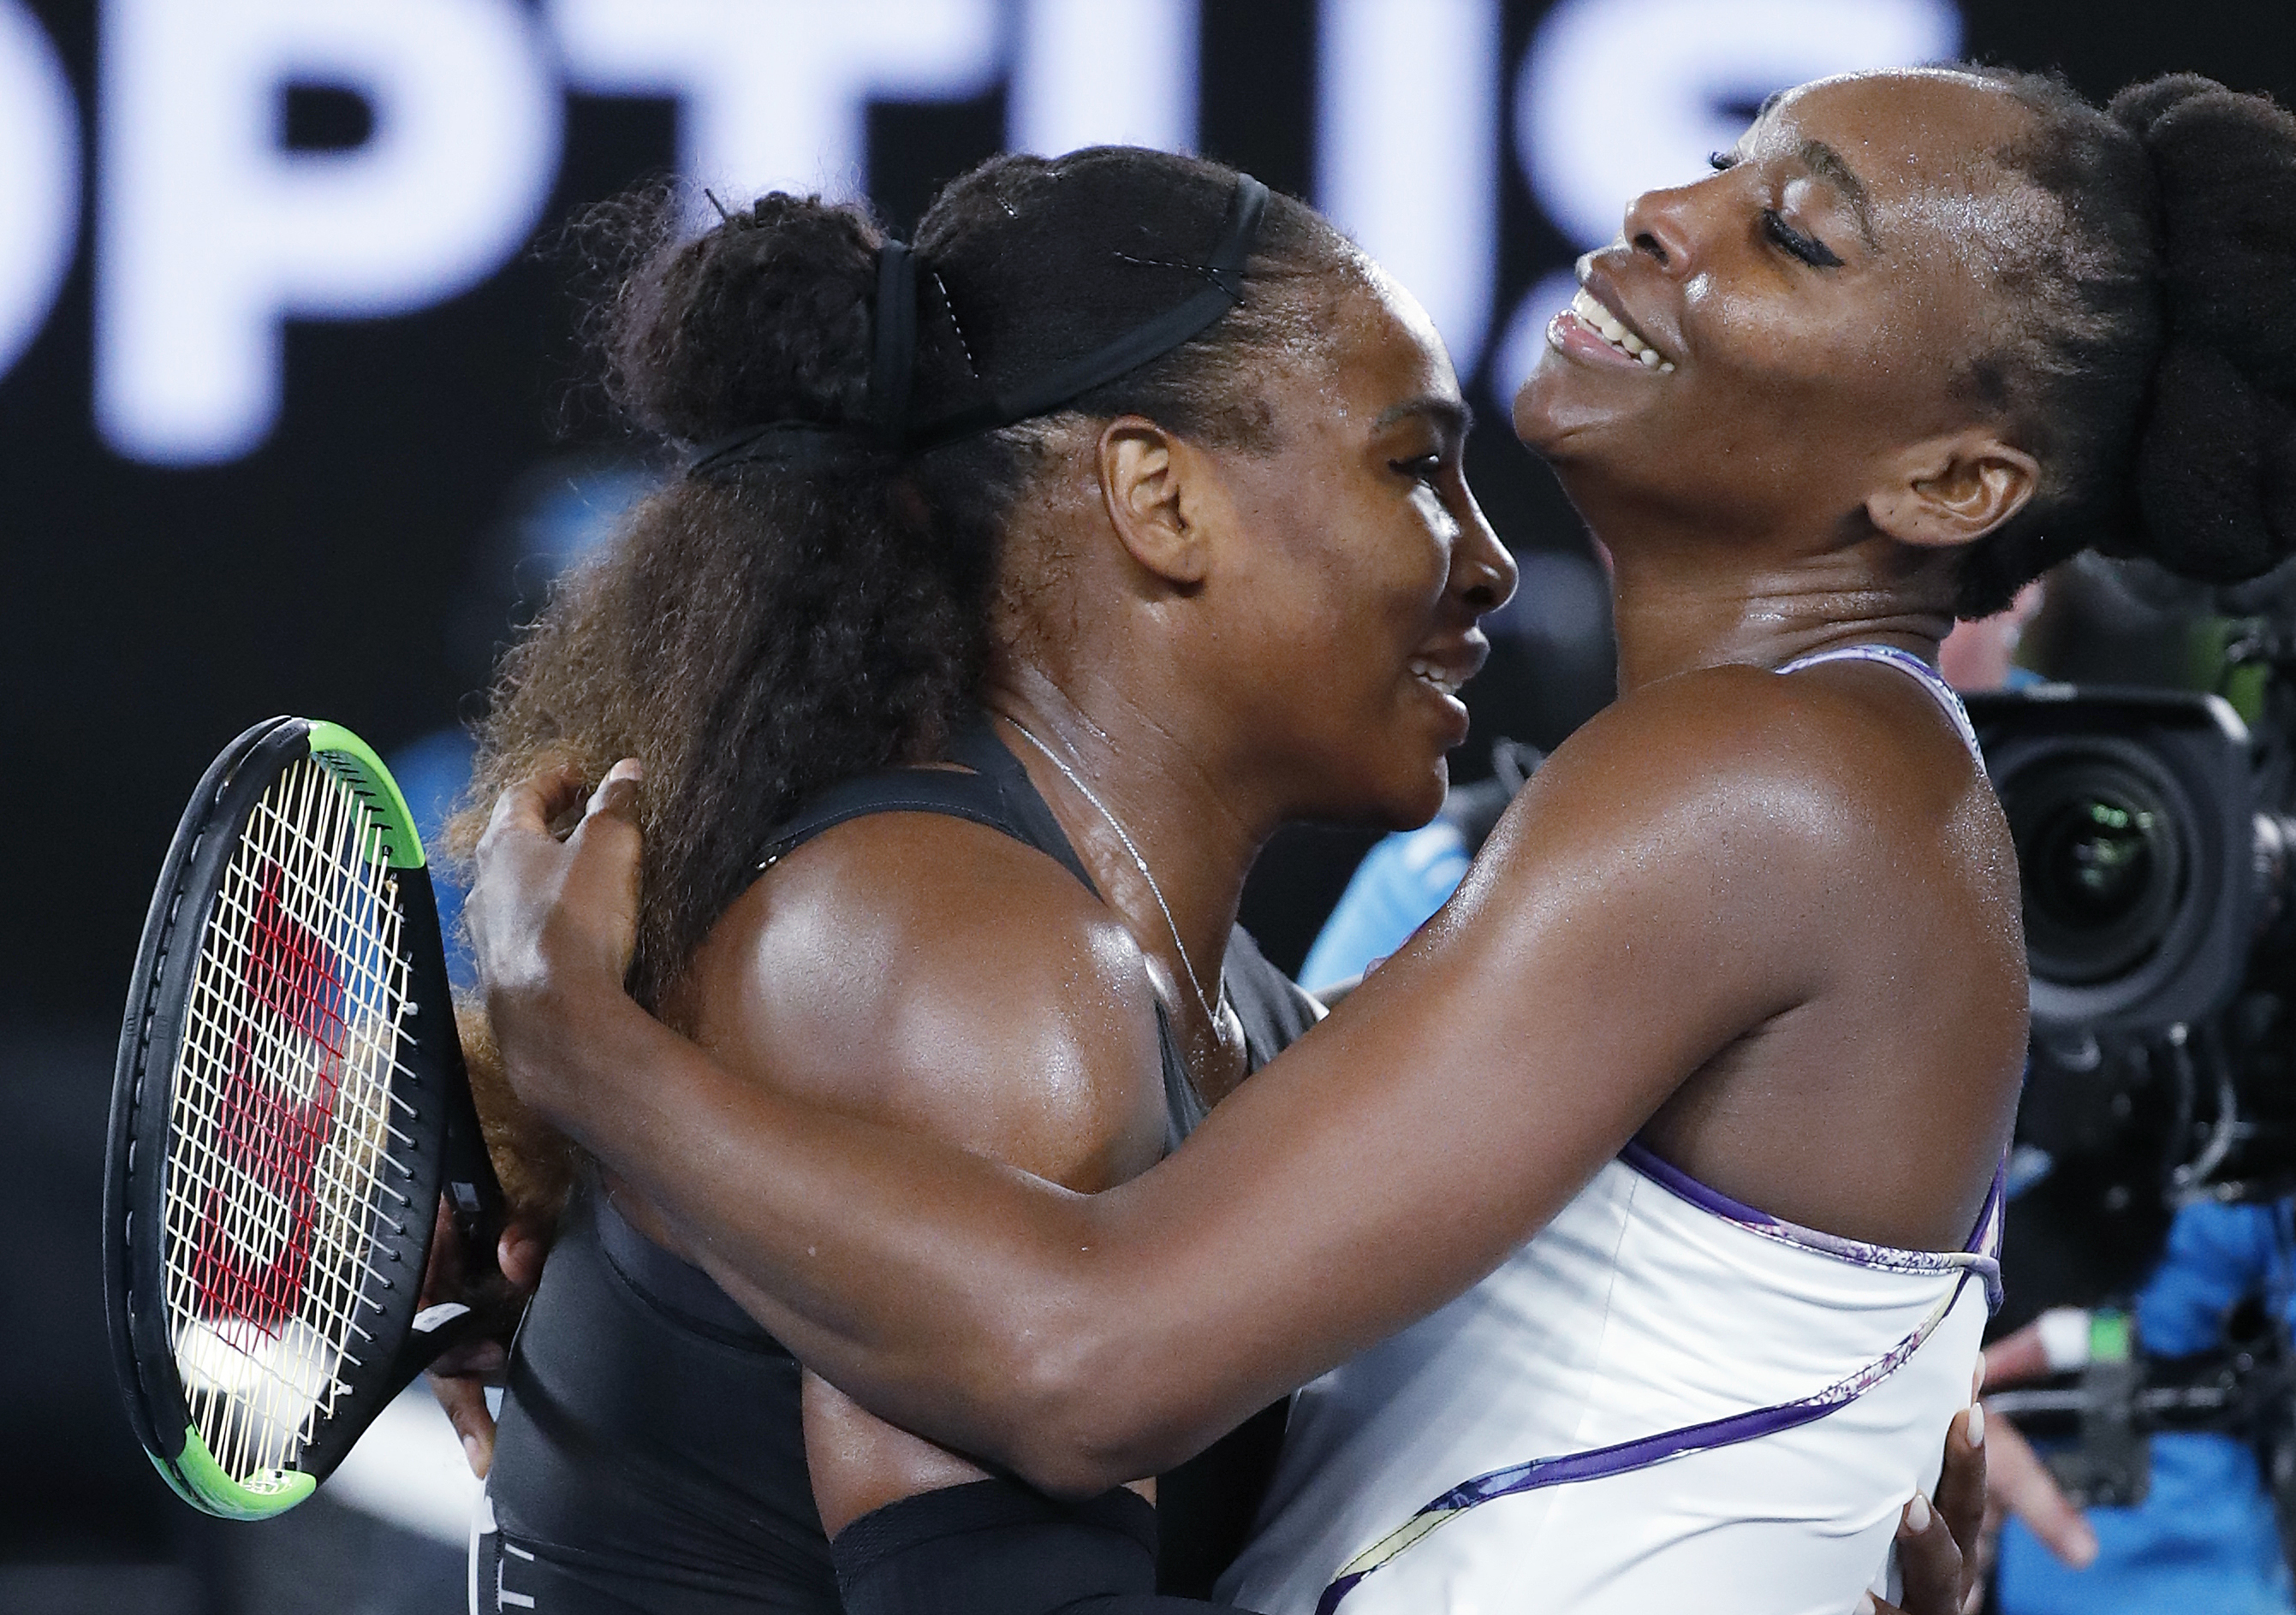 In this Saturday, Jan. 28, 2017 photo, United States' Serena Williams, left, embraces her sister, Venus, as she celebrates after winning the women's singles final at the Australian Open tennis championships in Melbourne, Australia. (AP Photo/Dita Alangkar